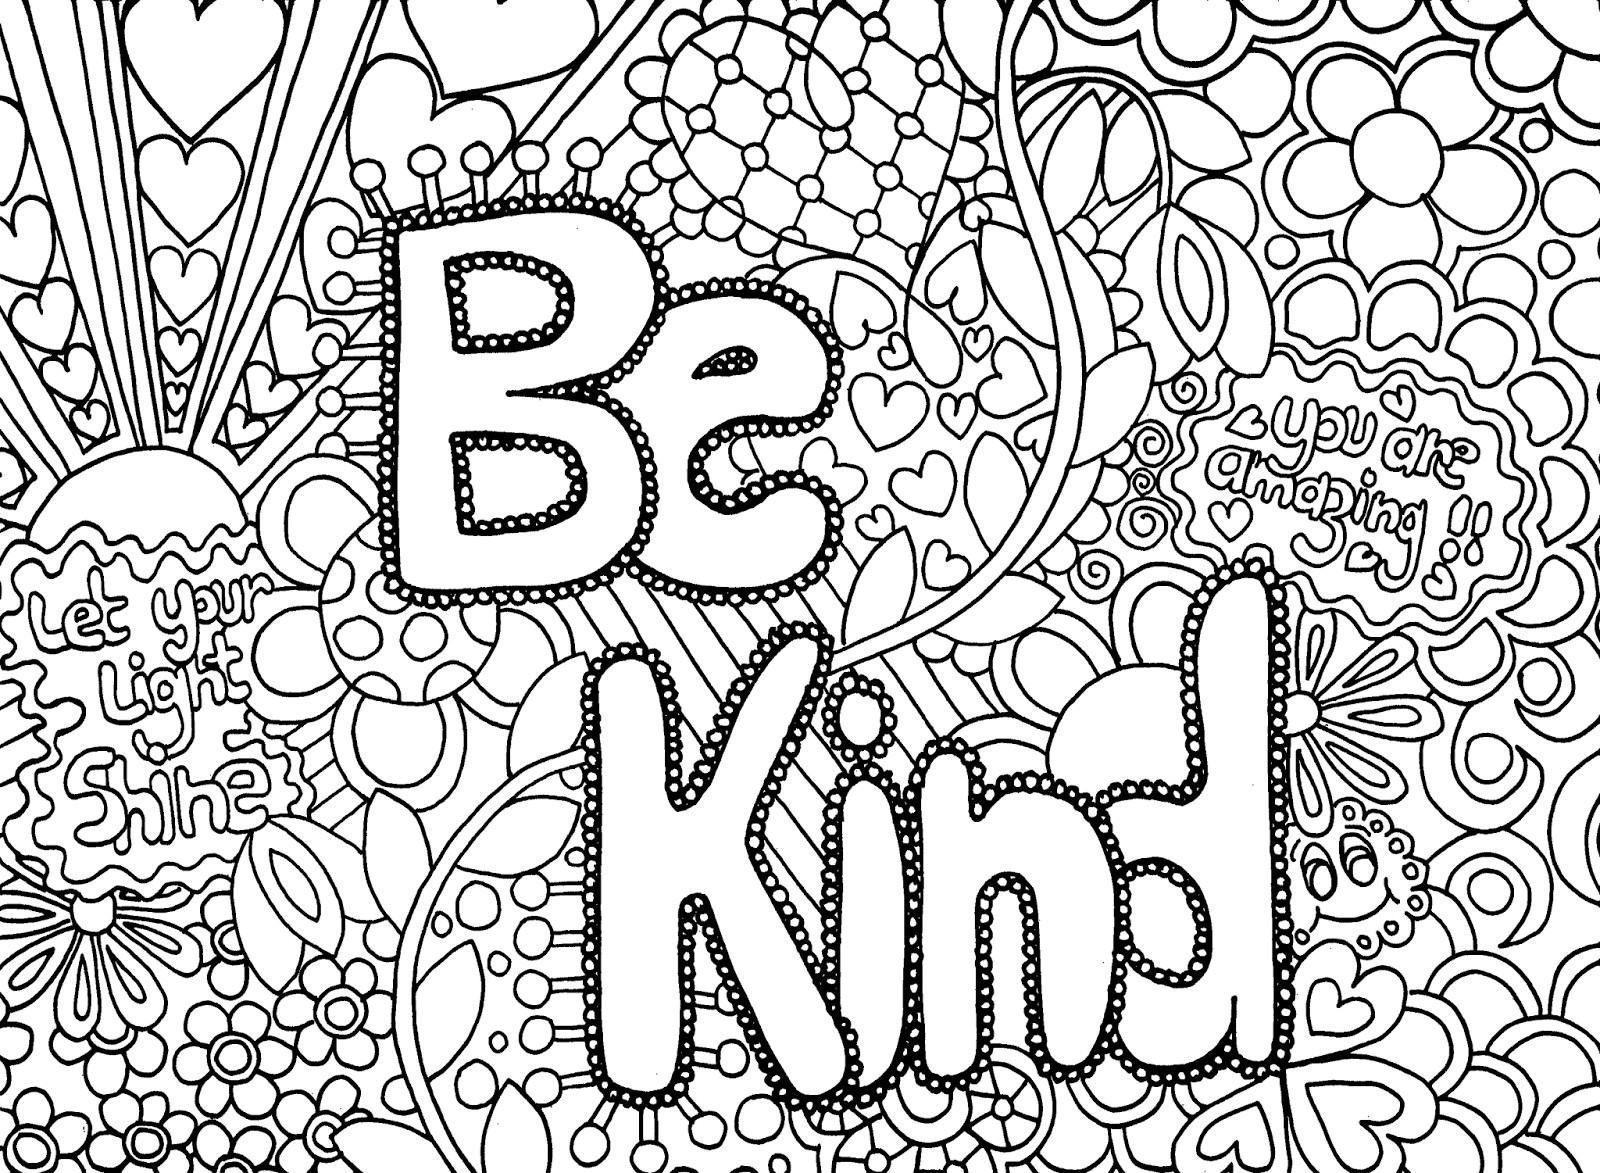 Coloring Pages For Teens No Boys  For the last few years kid s coloring pages printed from